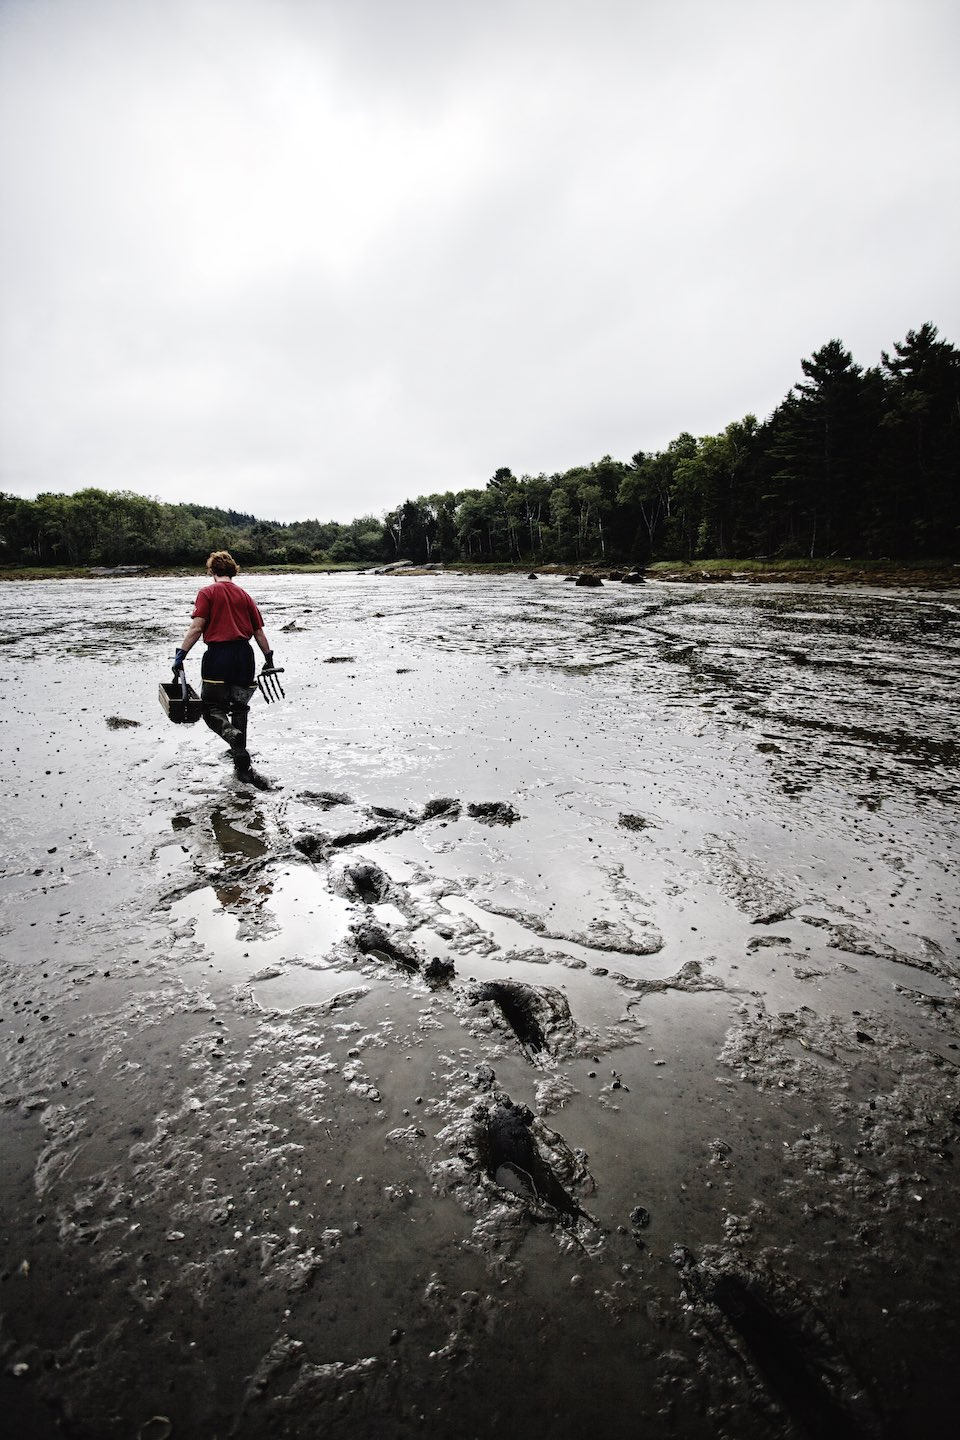 Fisherman walking through a mud flat where clams are found.